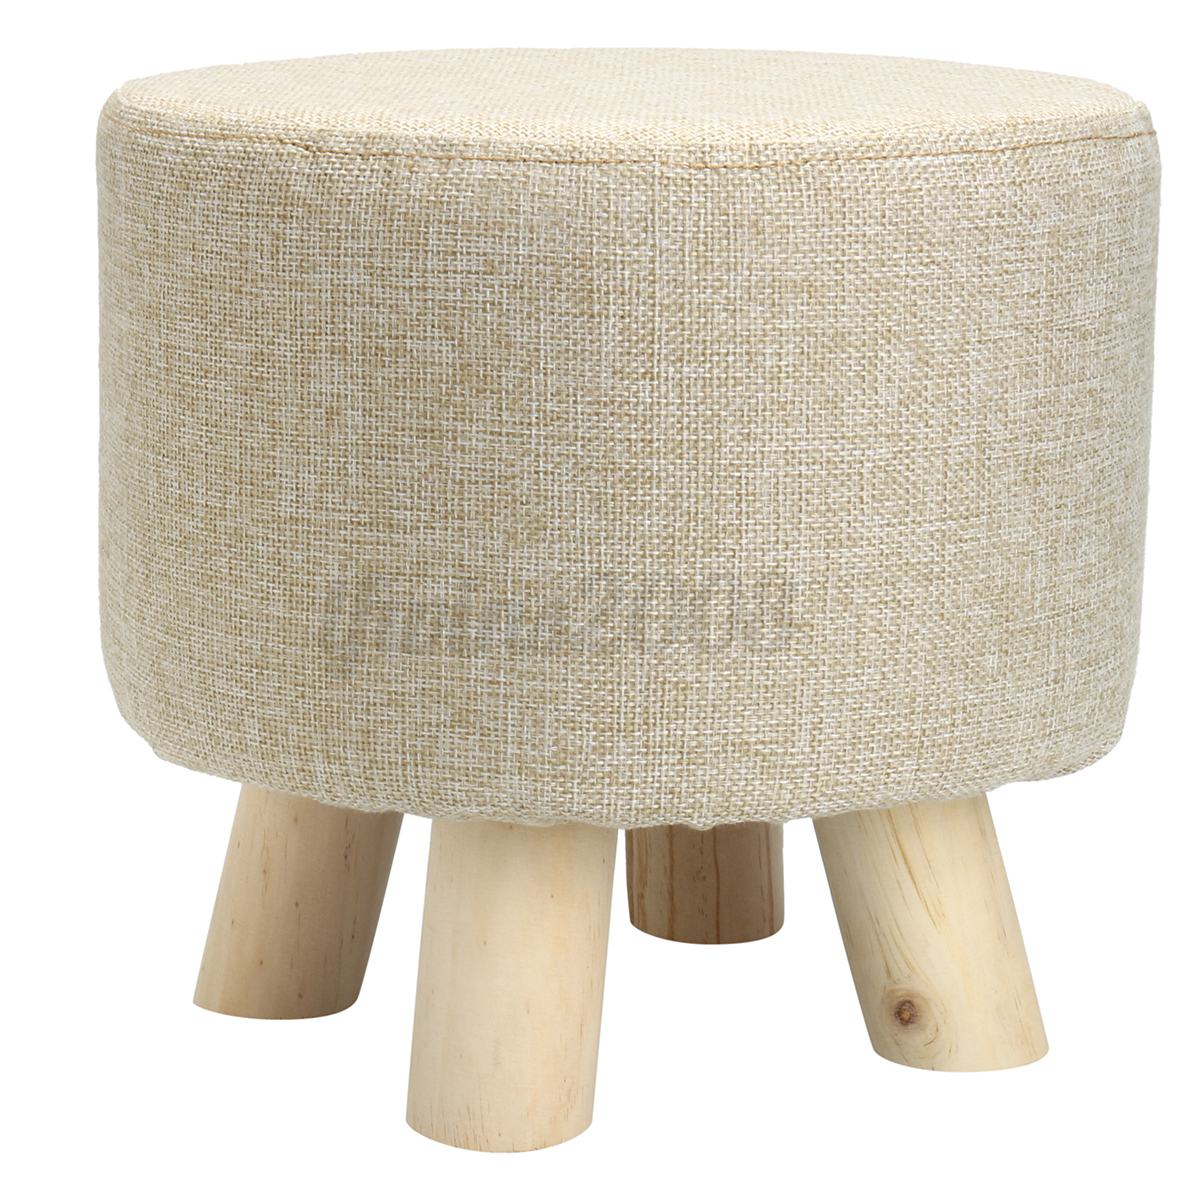 small round chair school desks and chairs footstool wood pouffe ottoman foot stool